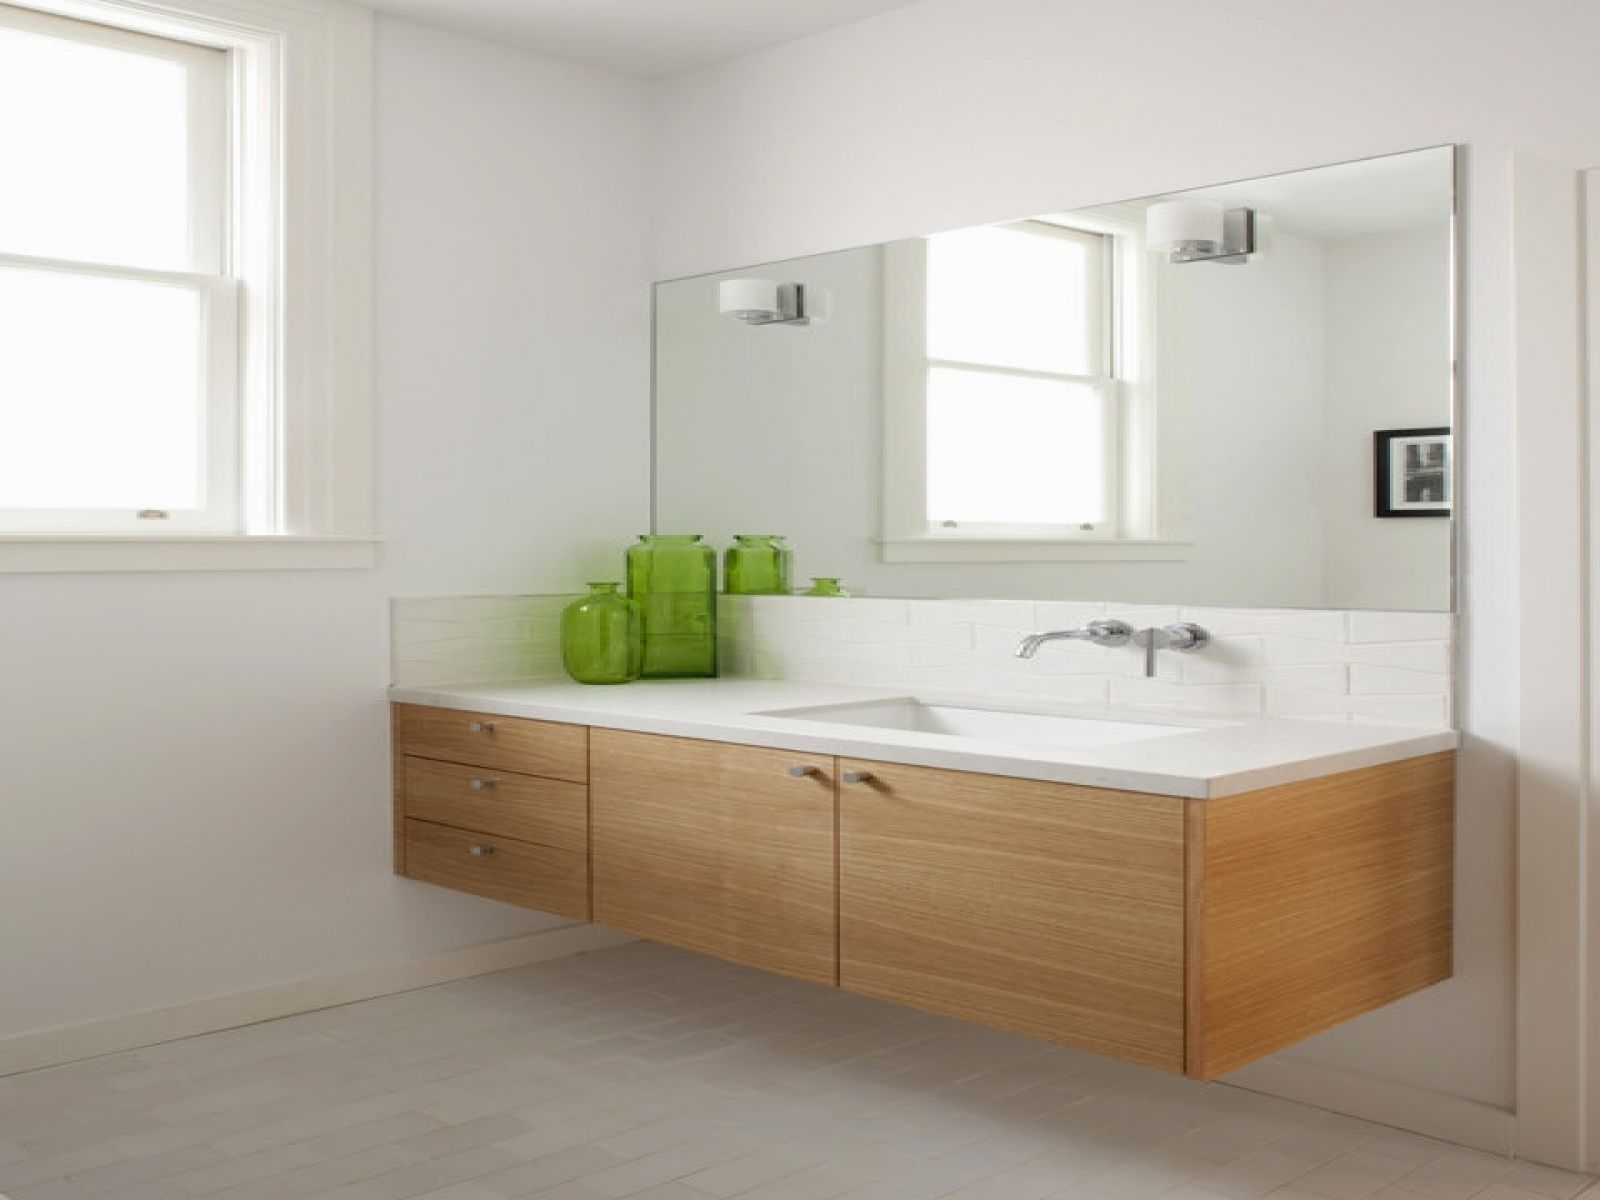 contemporary undermount bathroom sinks construction-New Undermount Bathroom Sinks Construction